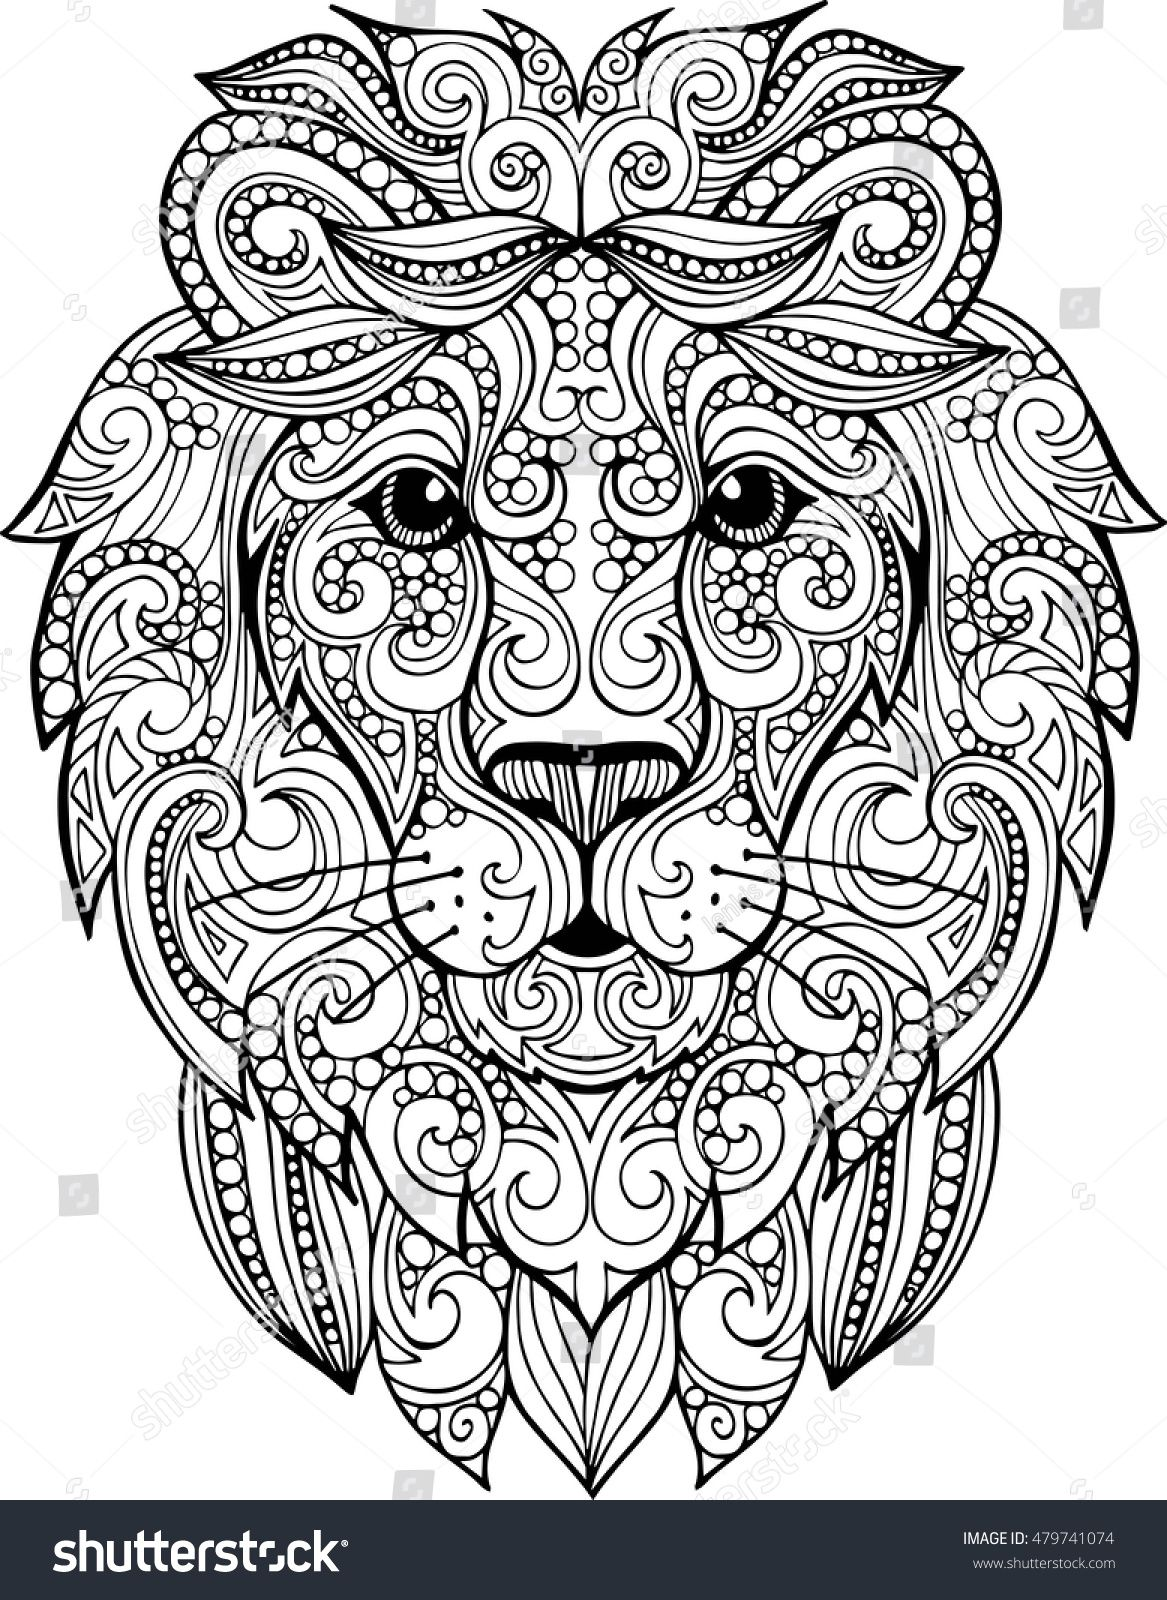 pinmichael prinz on zentangle | lion coloring pages